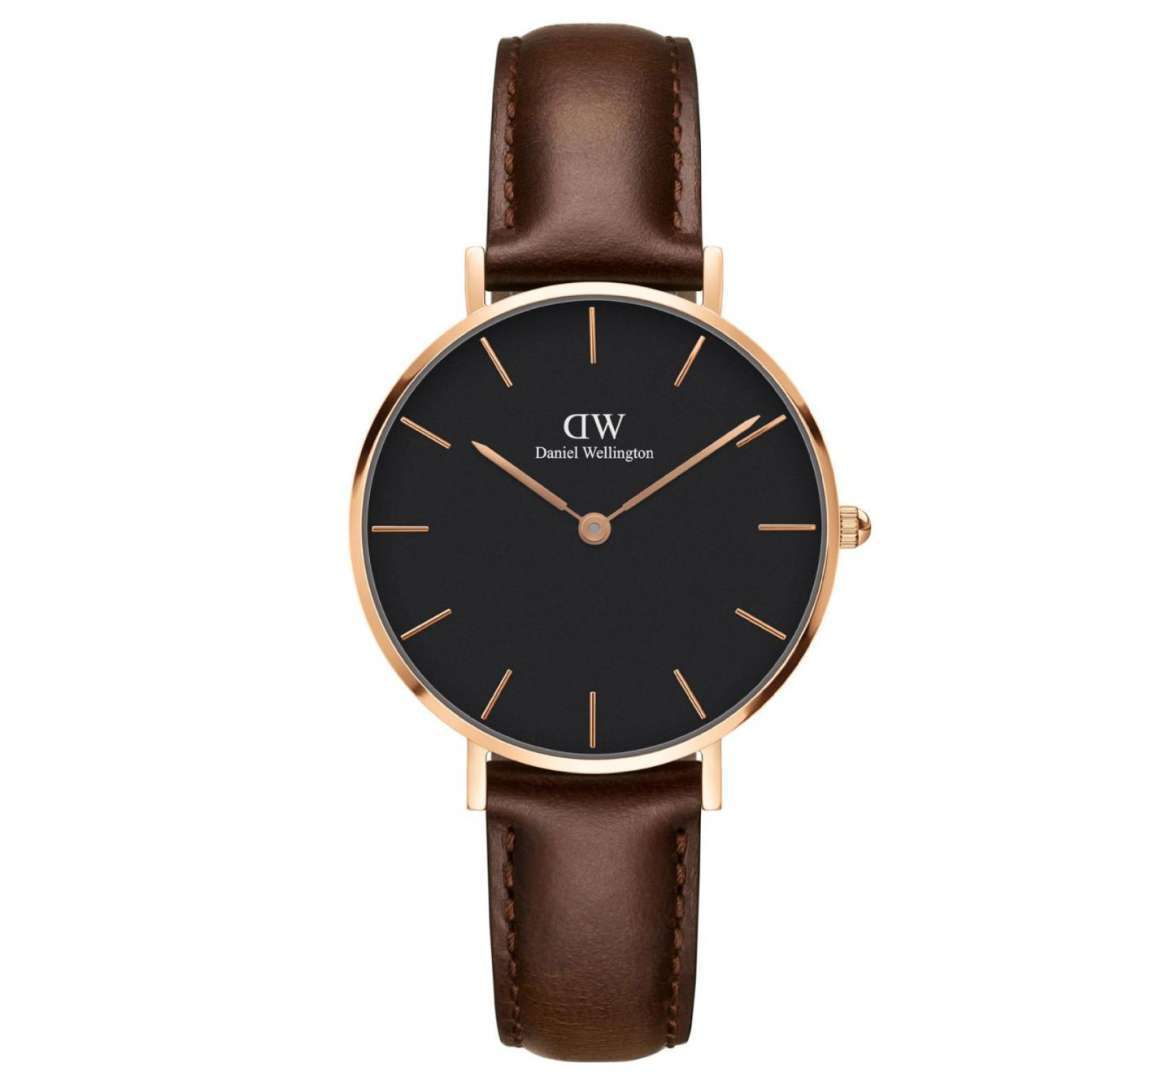 שעון יד אנלוגי daniel wellington DW00100165 דניאל וולינגטון